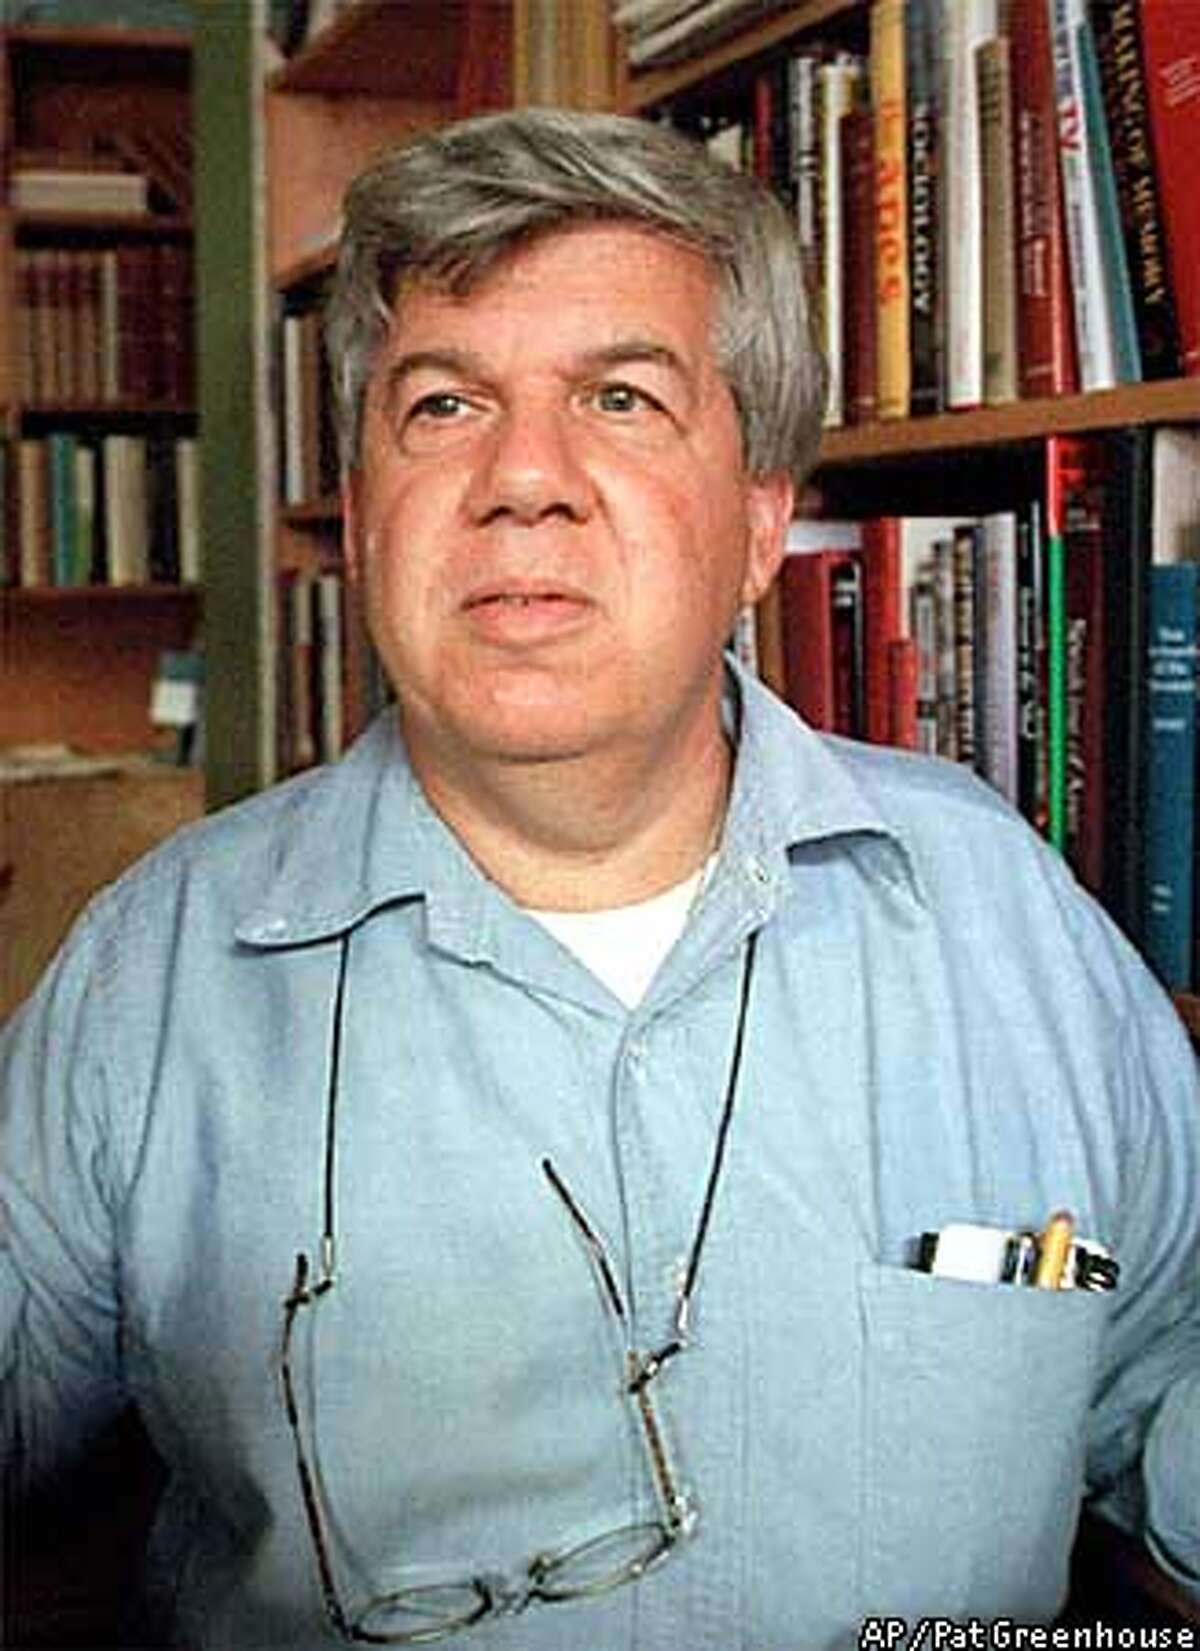 ** FILE ** Famed Harvard University biologist and author Stephen J. Gould, is shown at his Cambridge, Mass., office, in this 1997 file photo. Gould, 60, died Monday, May 20, 2002, of cancer at his home in New York. (AP Photo/The Boston Globe, Pat Greenhouse)